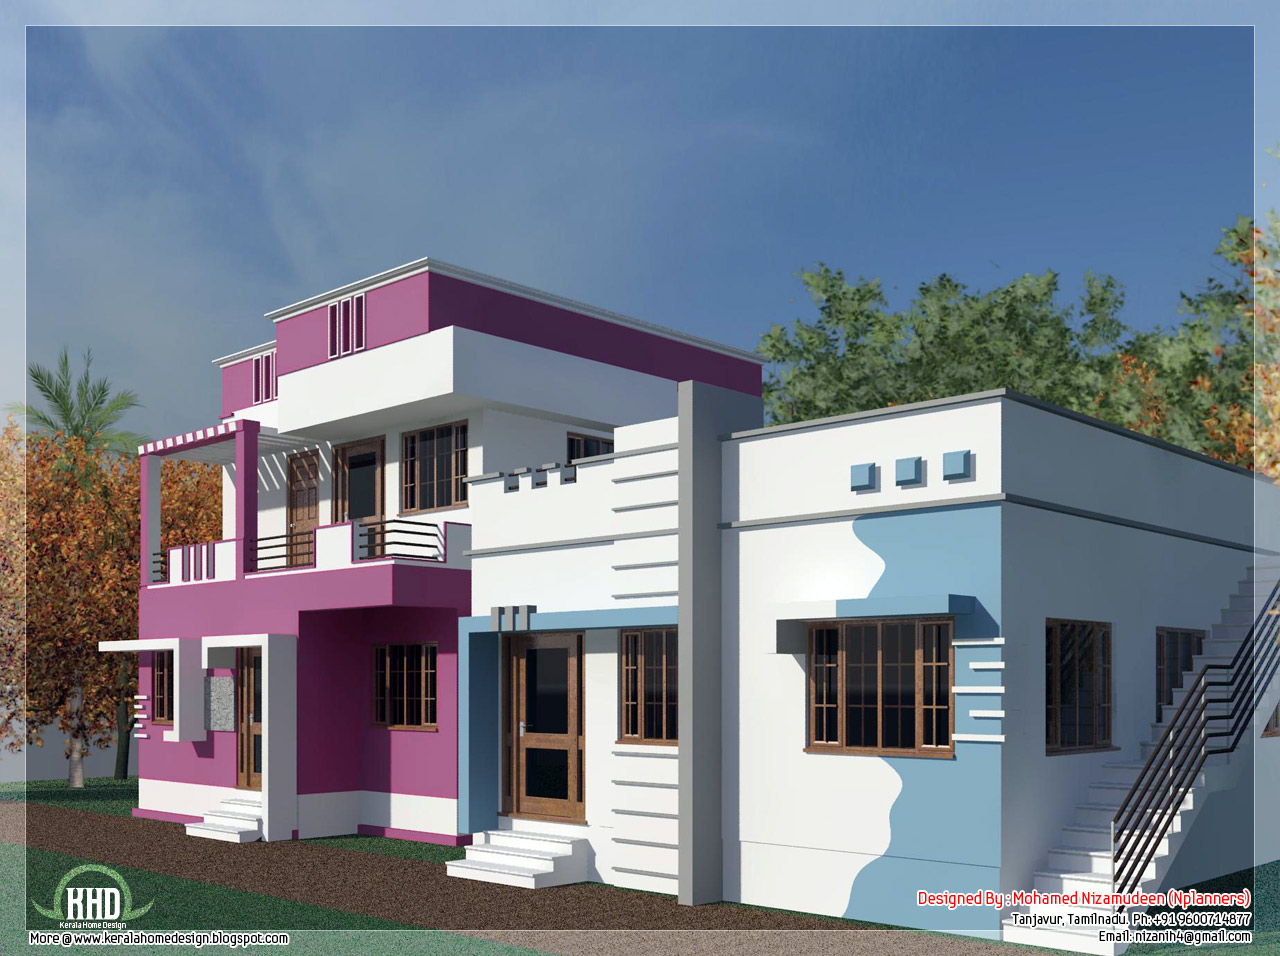 Tamilnadu model home design in 3000 kerala home Indian model house plan design